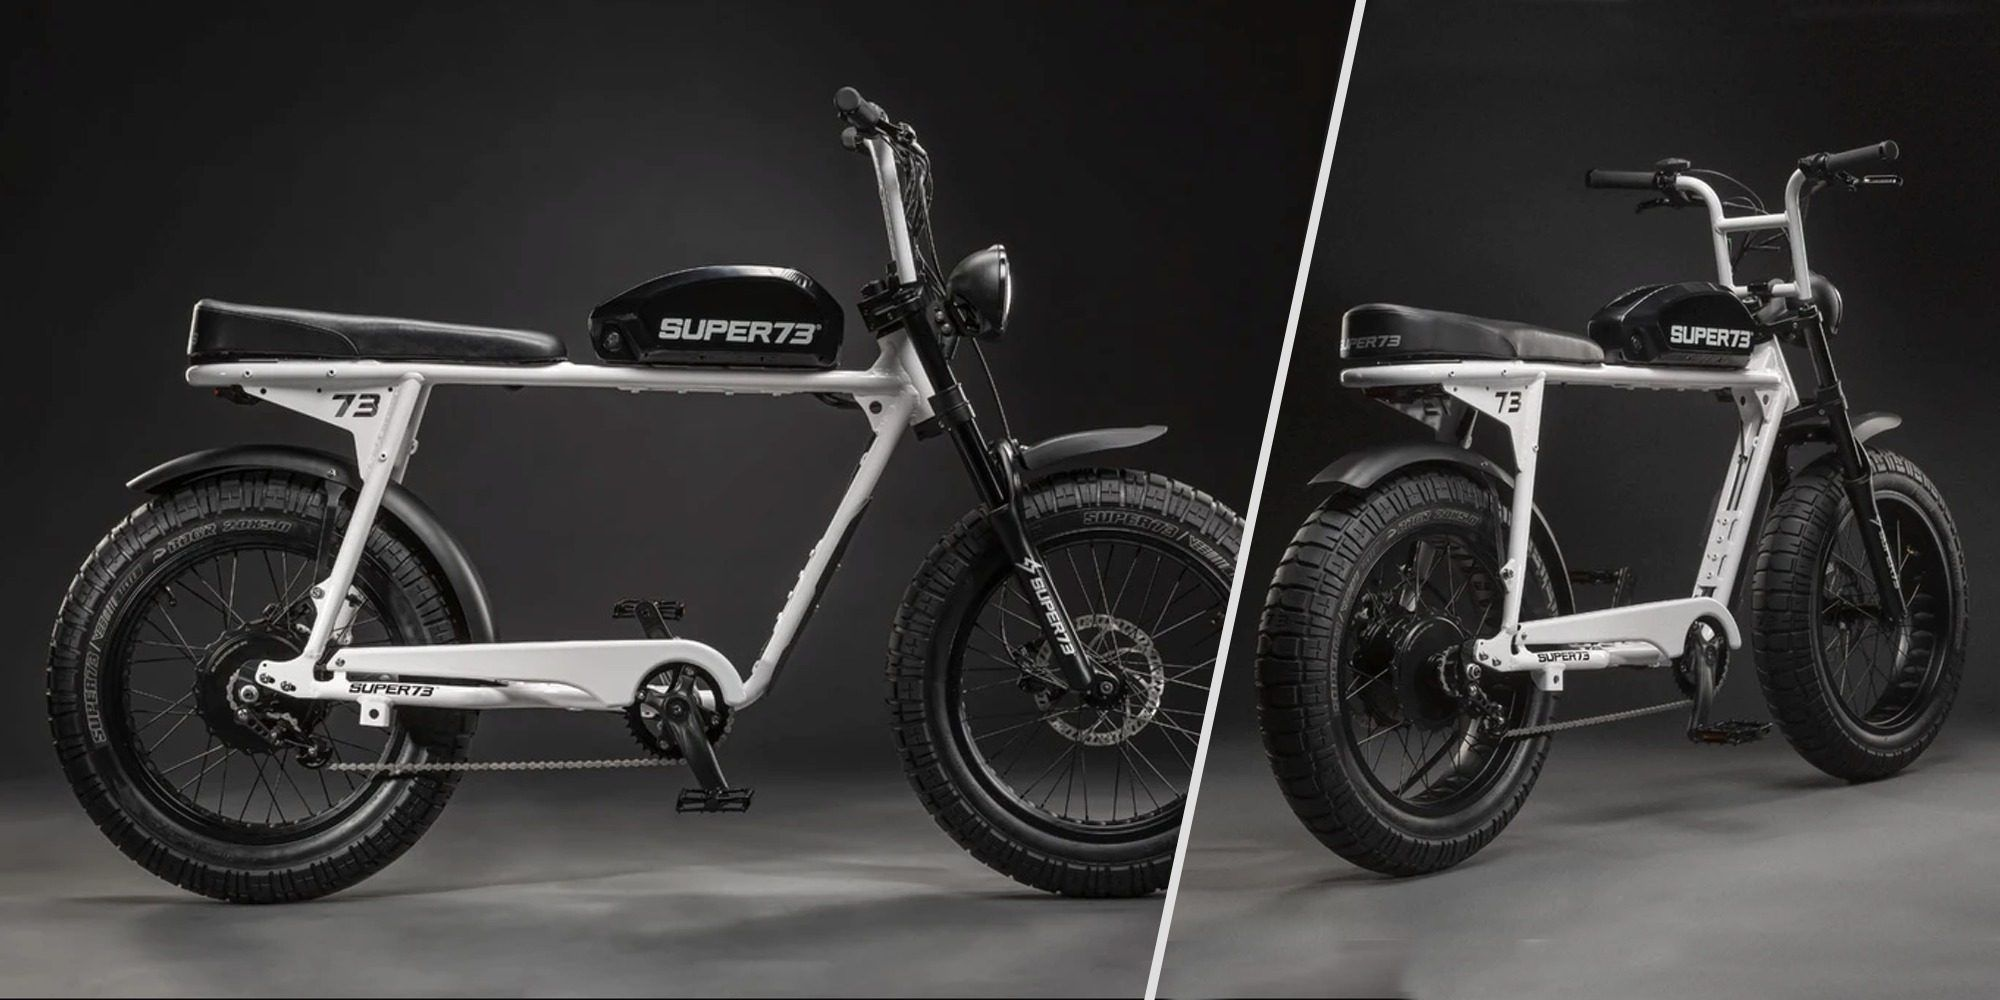 Super73 S2 Unveiled As 2 Kw Electric Bike And It Might Be The